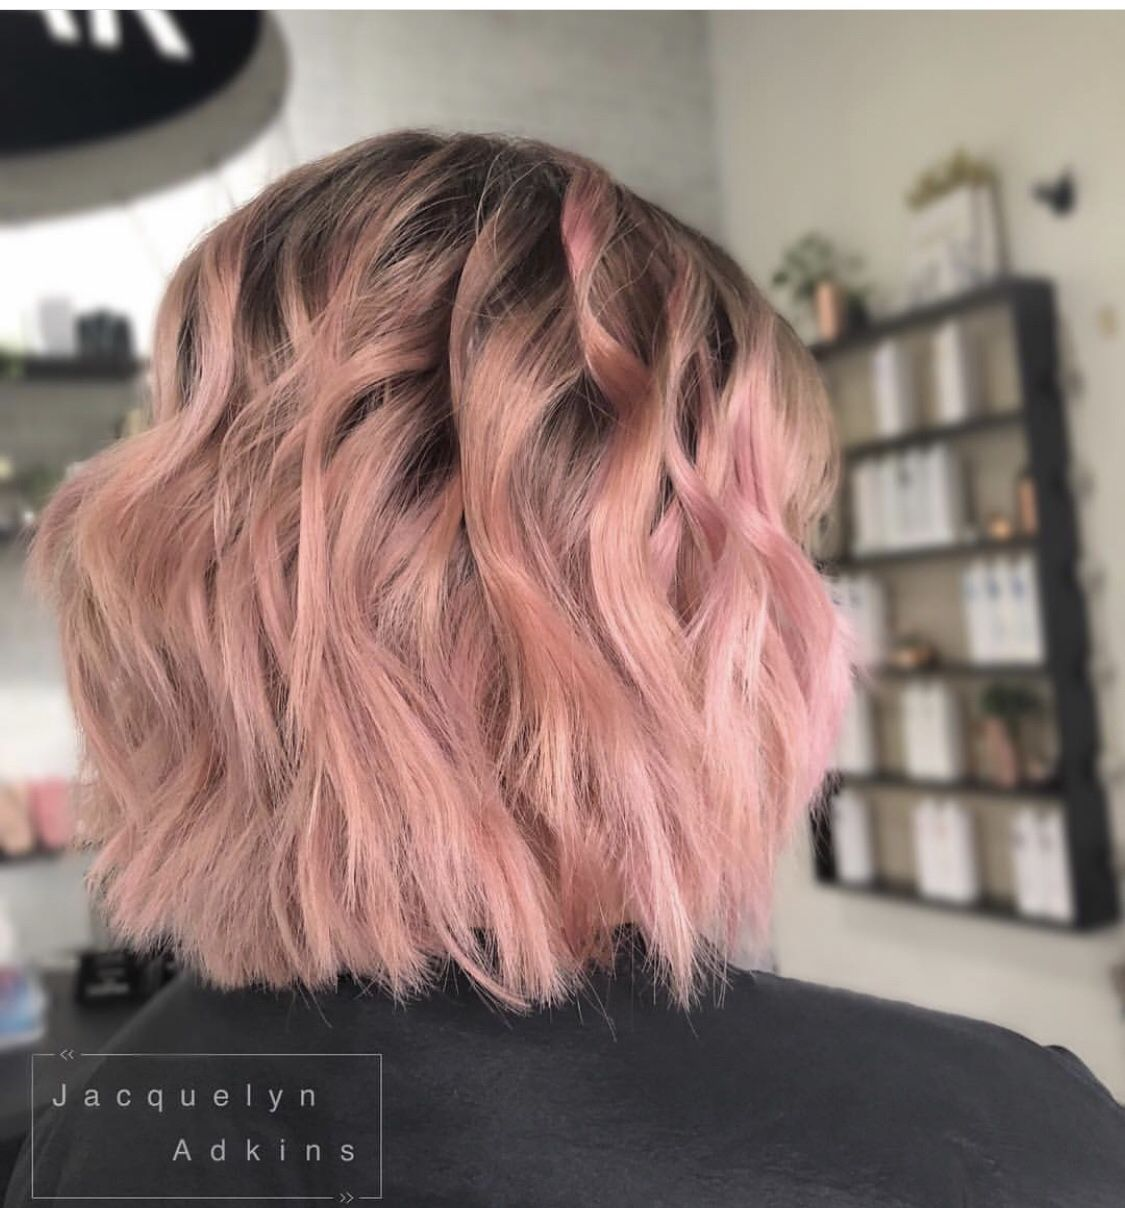 Follow Me On Instagram Unevneib Dark Root Pink Ends Hair Short Hair Rose Hair Rose Gold Wavy Hair Wand Curls Pink Short Hair Light Pink Hair Short Hair Styles